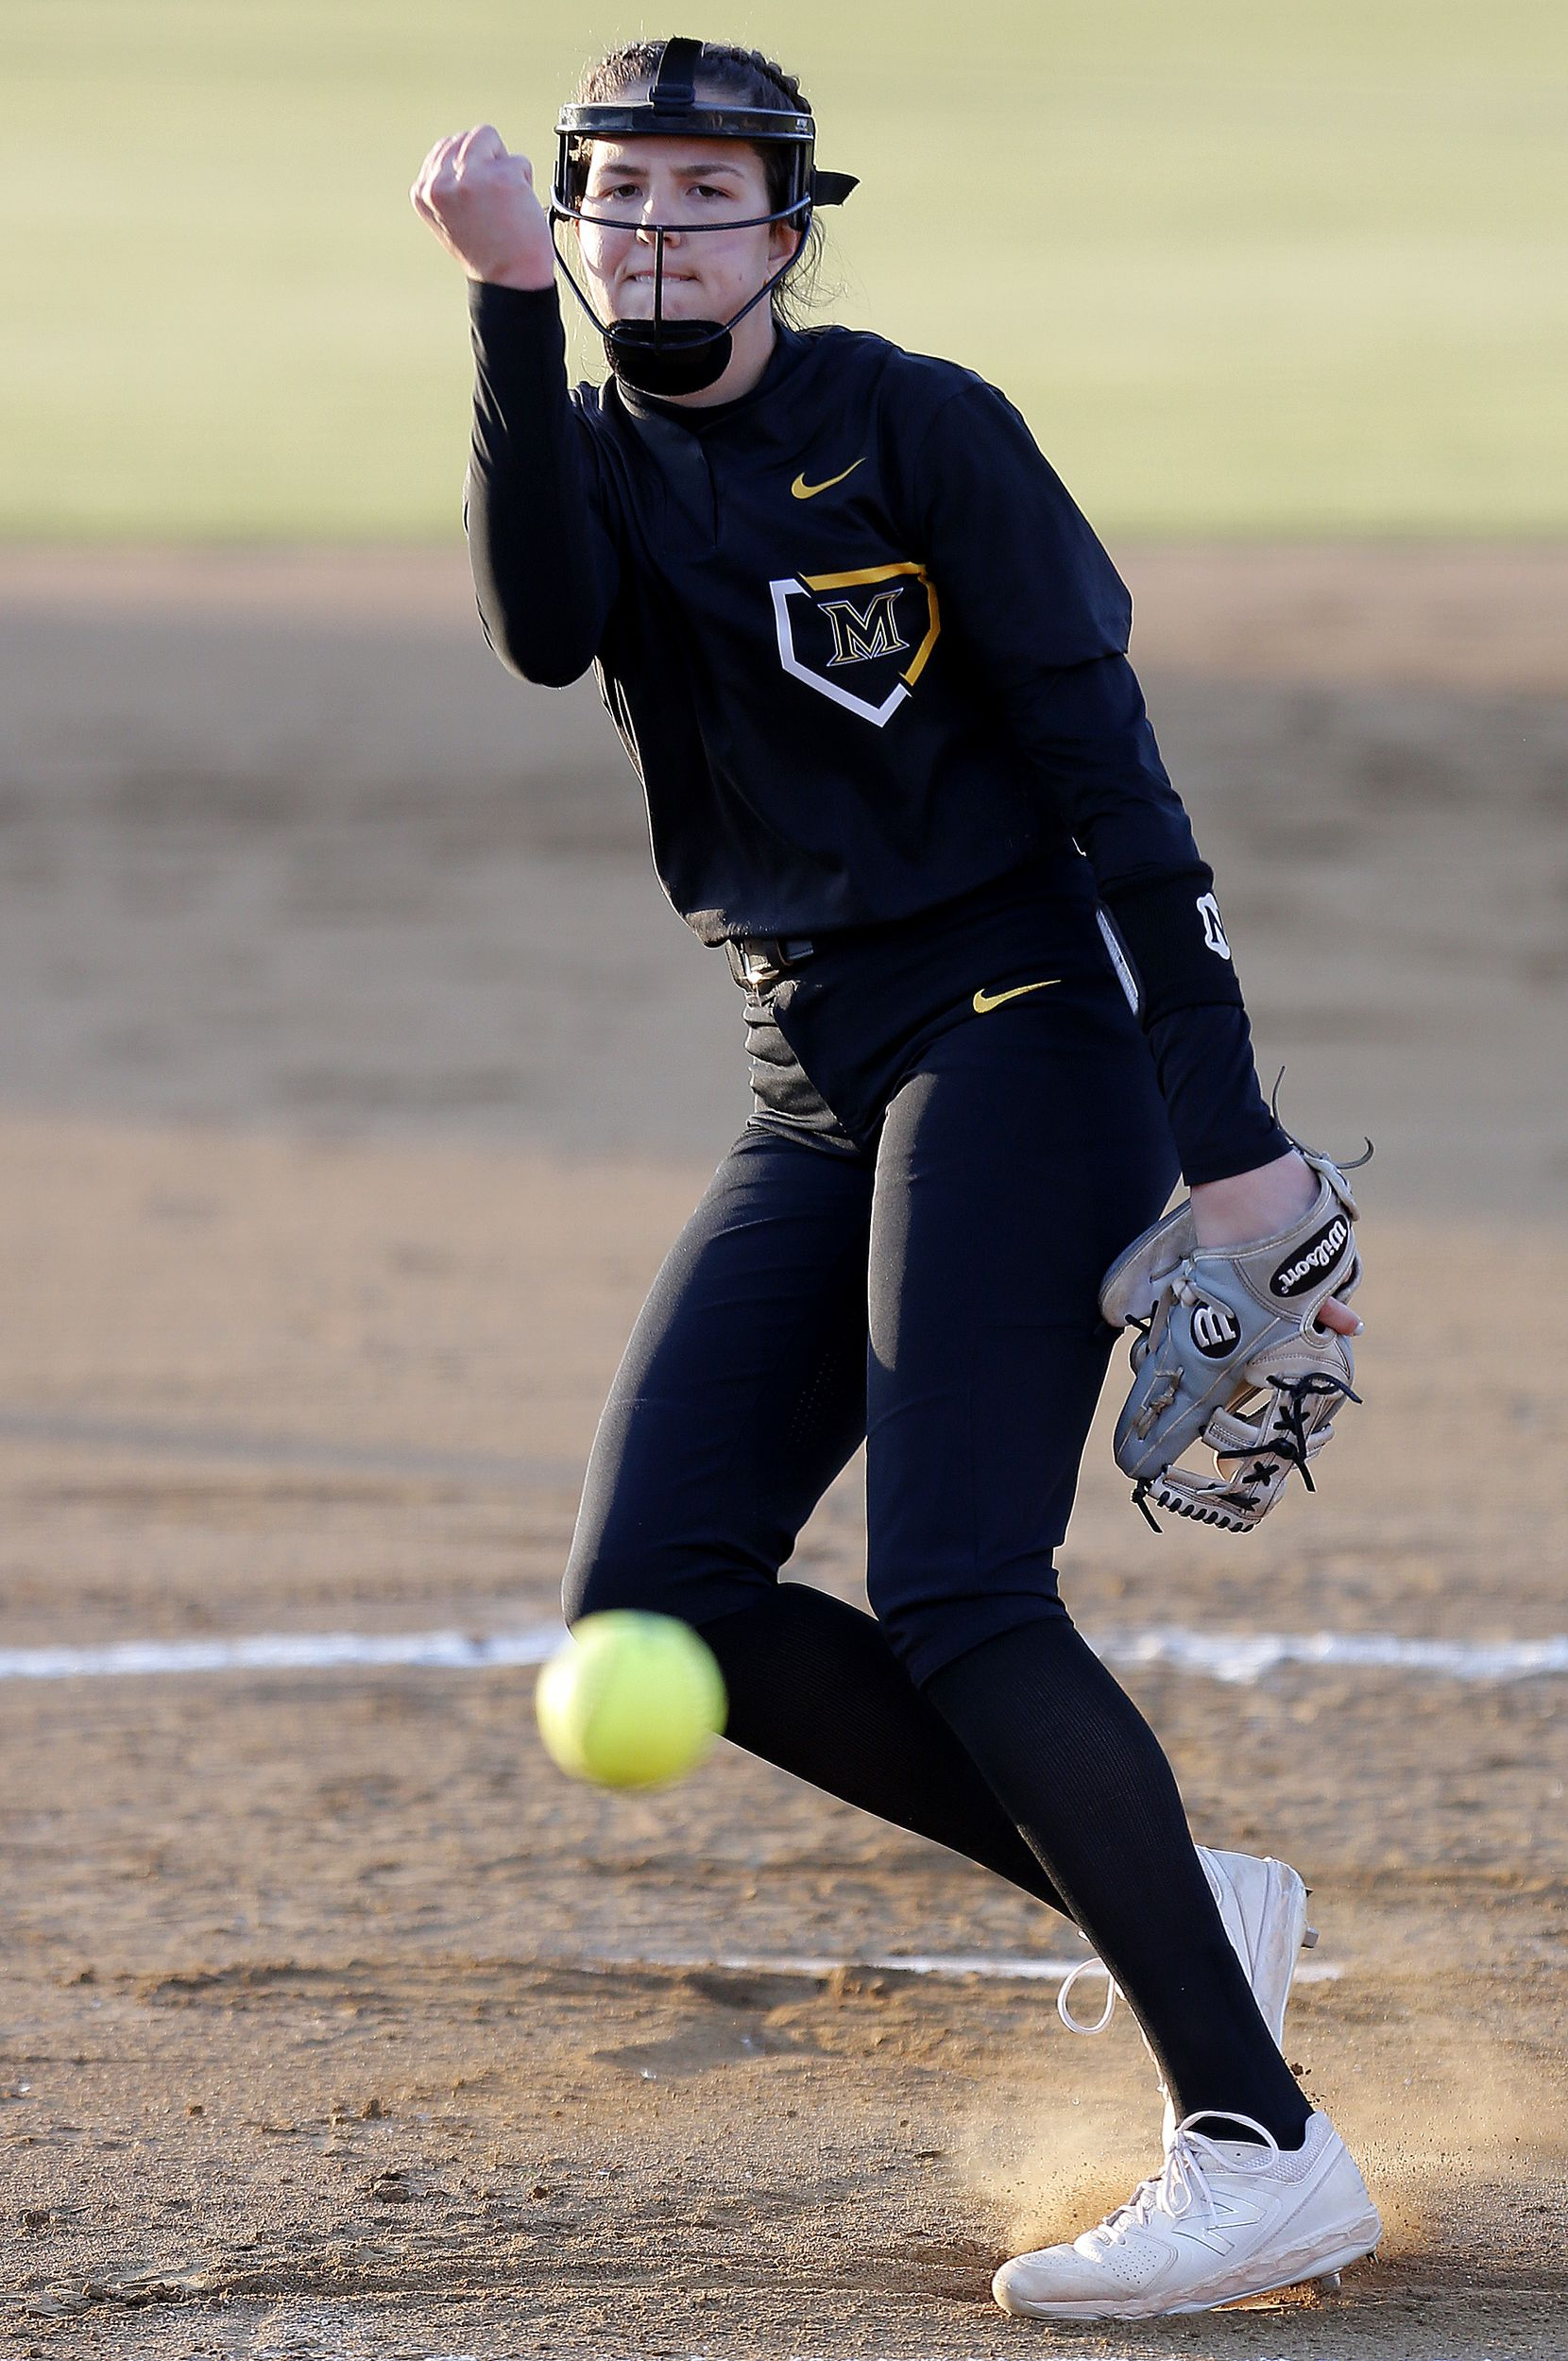 Memorial pitcher Maddie Muller (13) delivers a pitch in the first inning as Heritage High School hosted Memorial High School for the District 9-5A softball championship in Frisco on Tuesday, April 20, 2021. (Stewart F. House/Special Contributor)